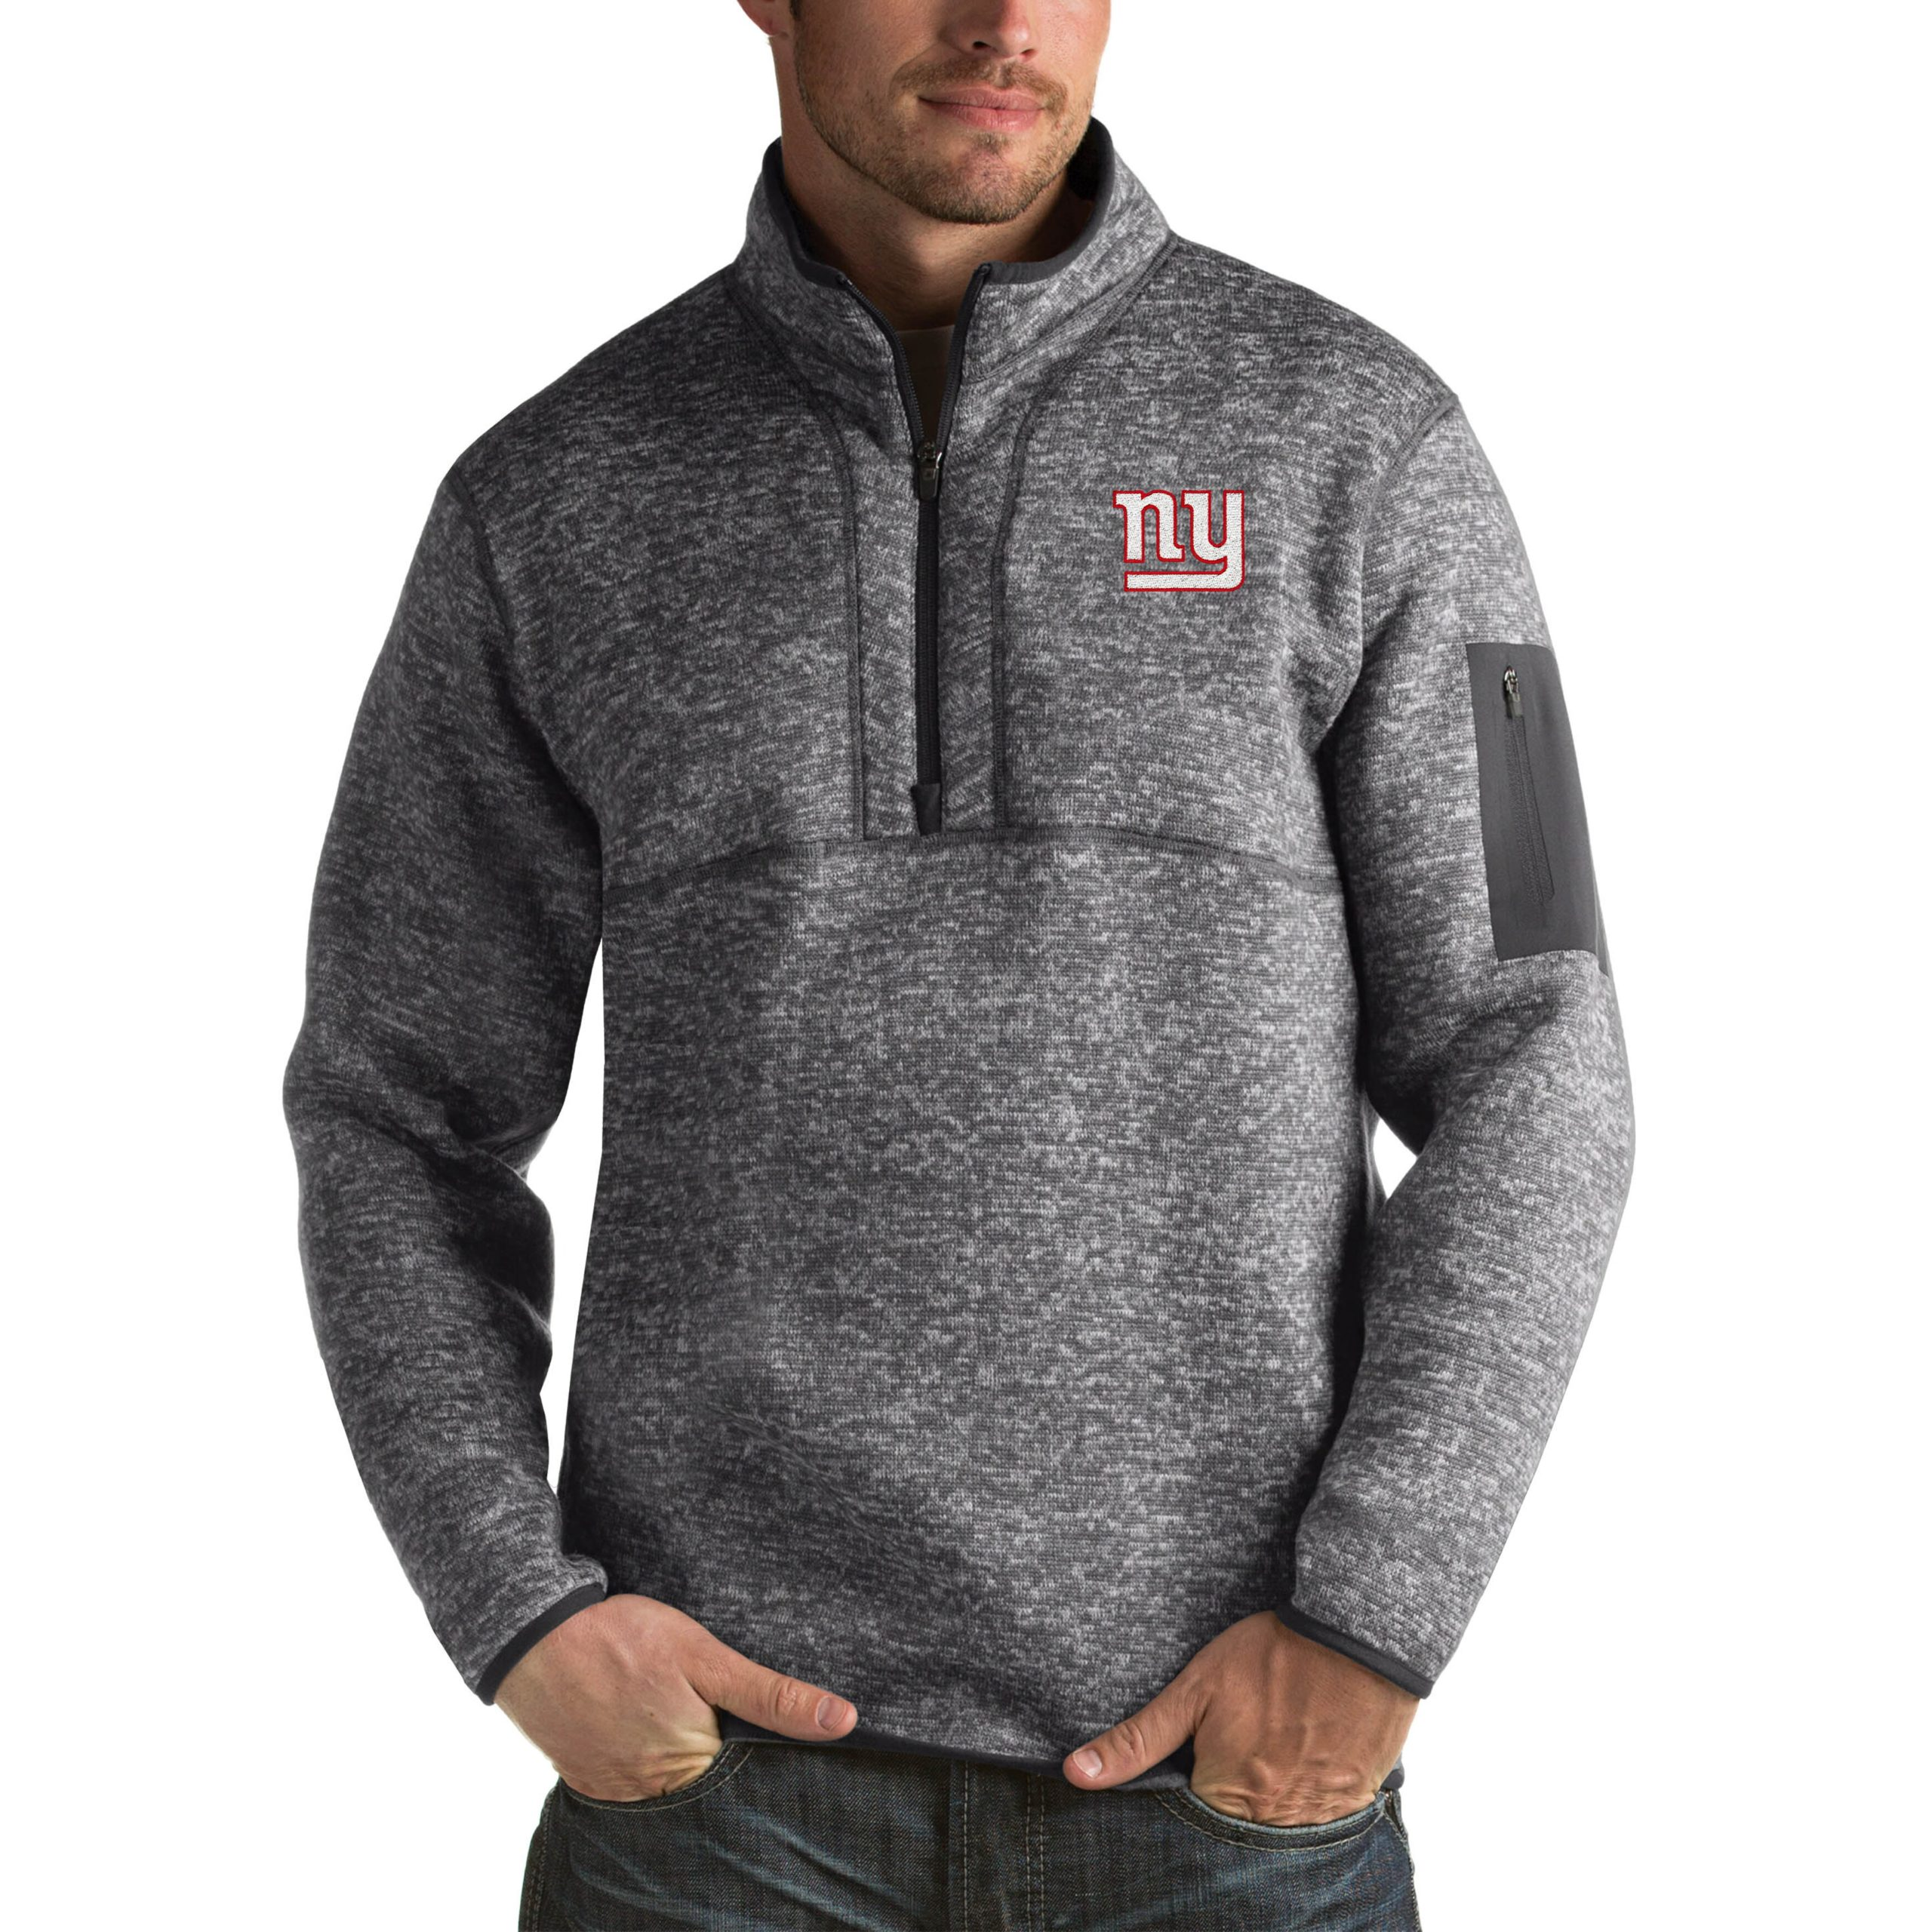 New York Giants Antigua Fortune Big & Tall Quarter-Zip Pullover Jacket - Charcoal